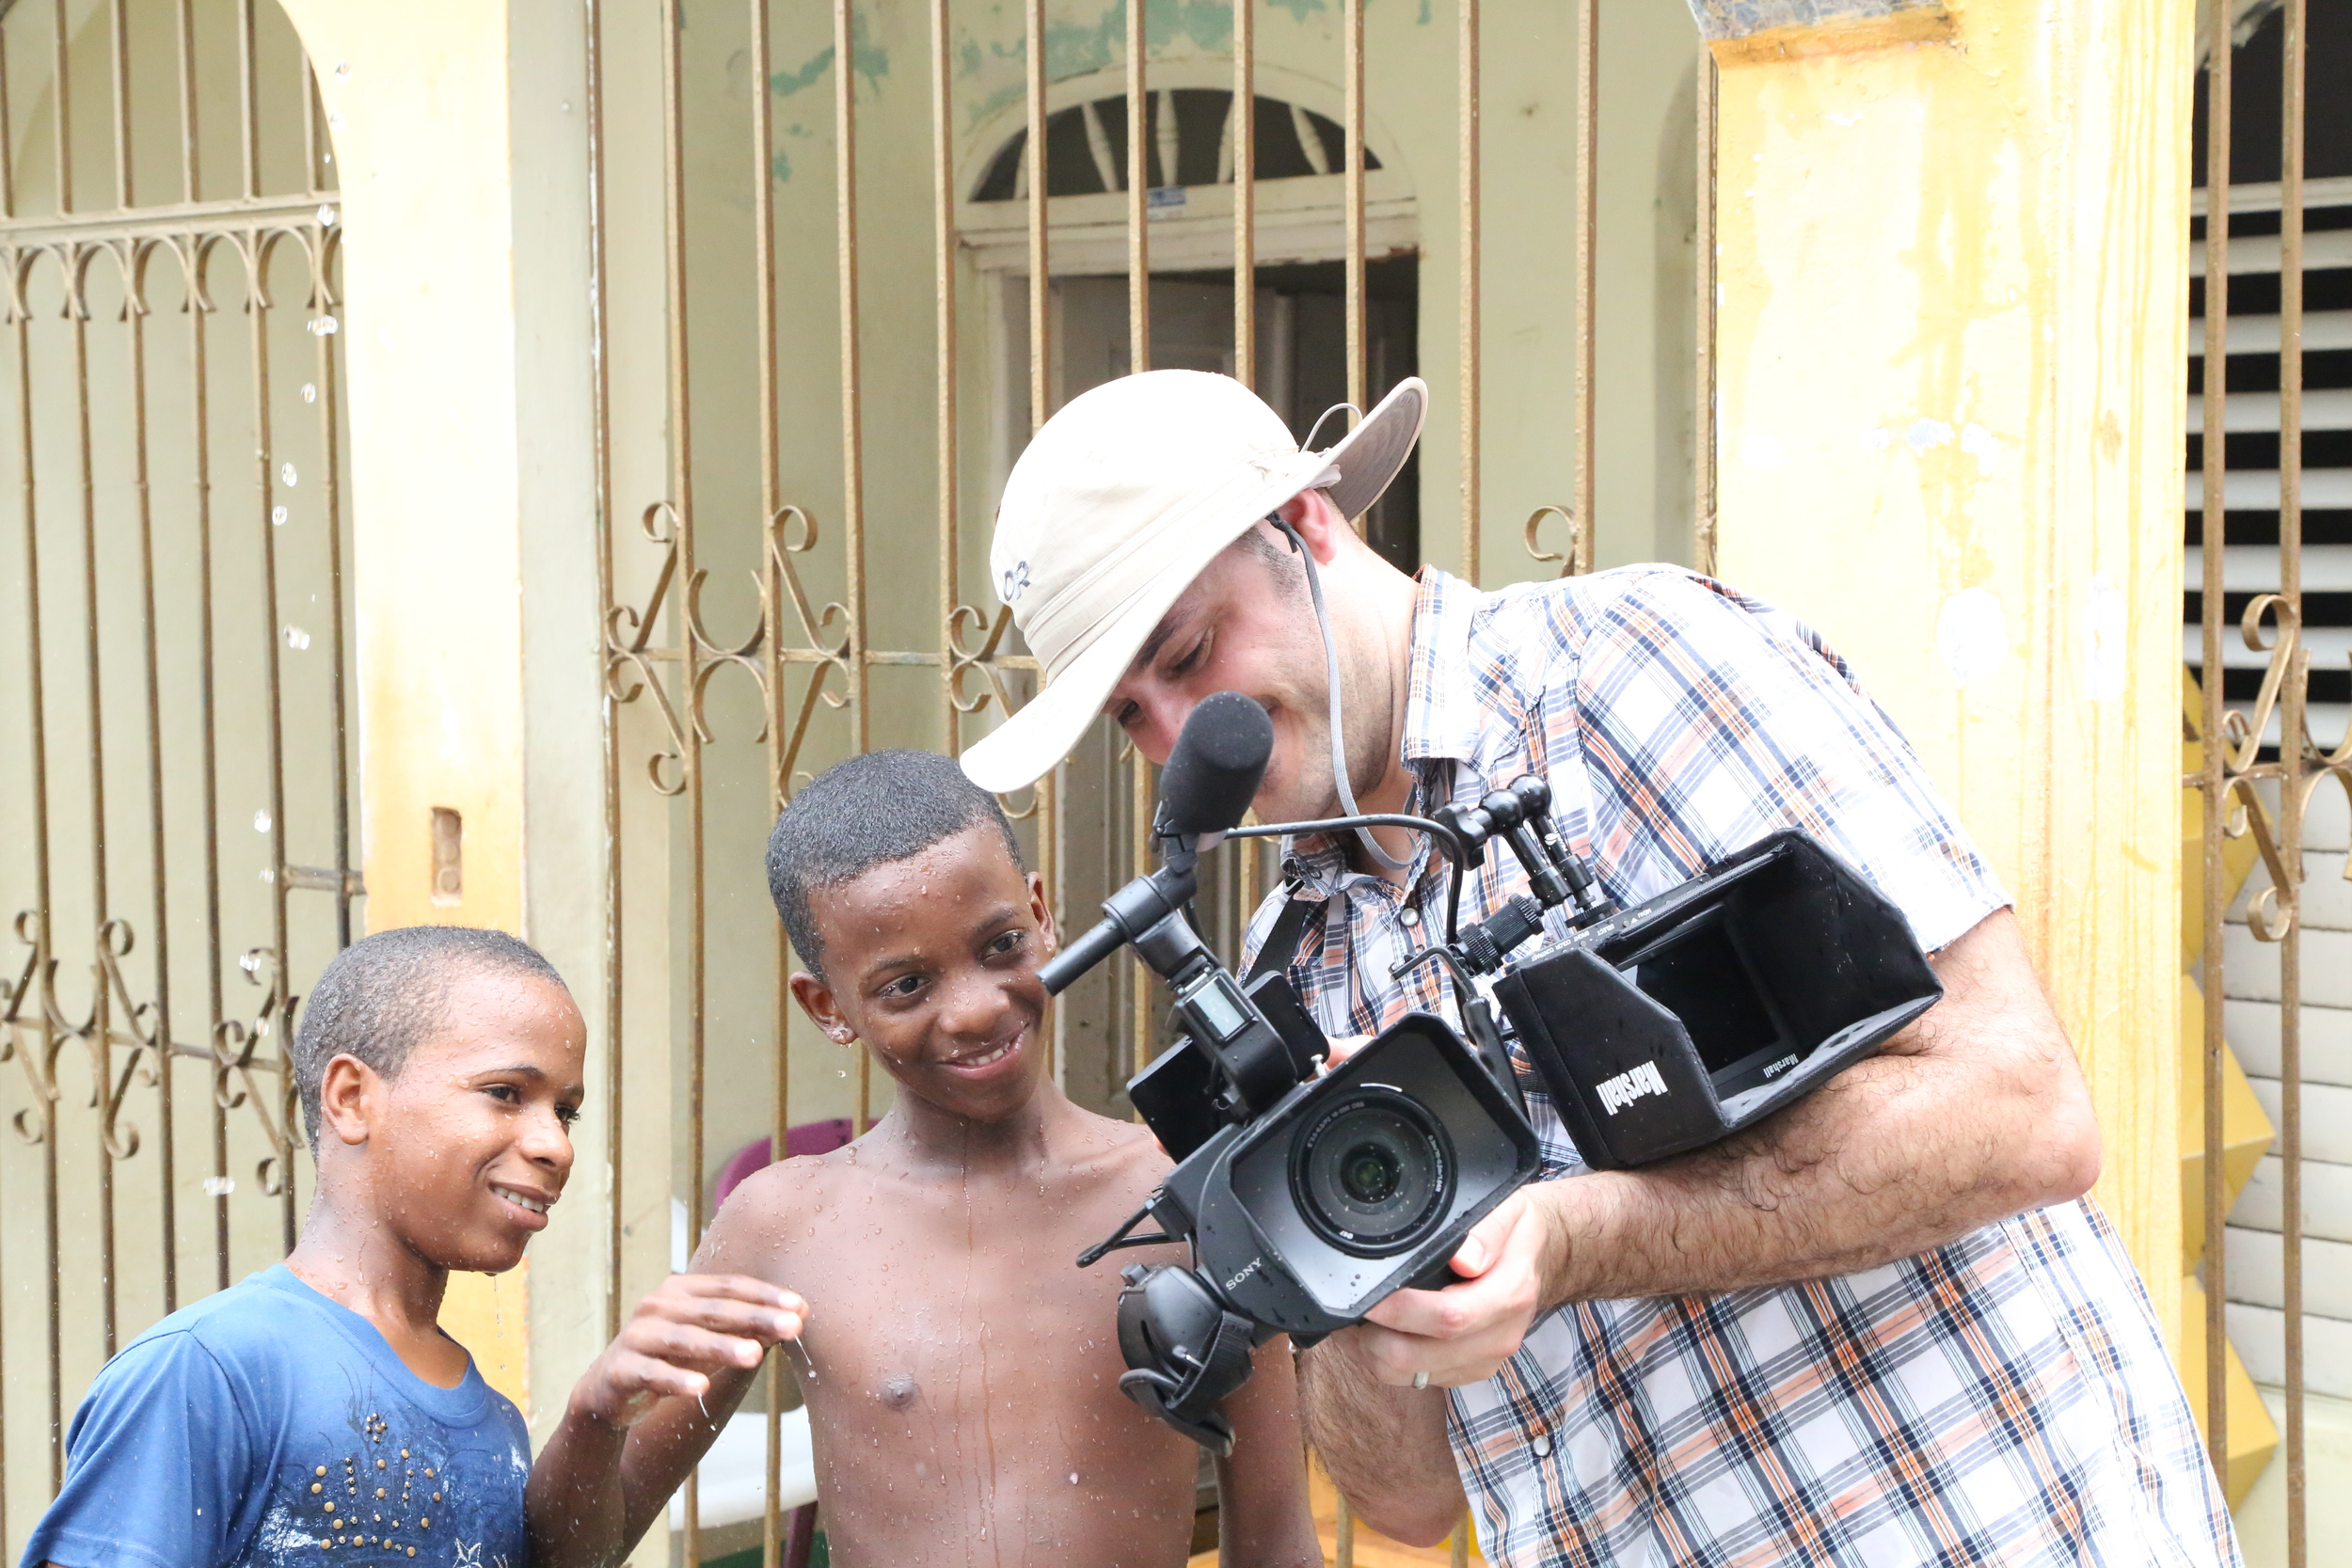 Showing some kids footage in Santo Domingo, Dominican Republic.